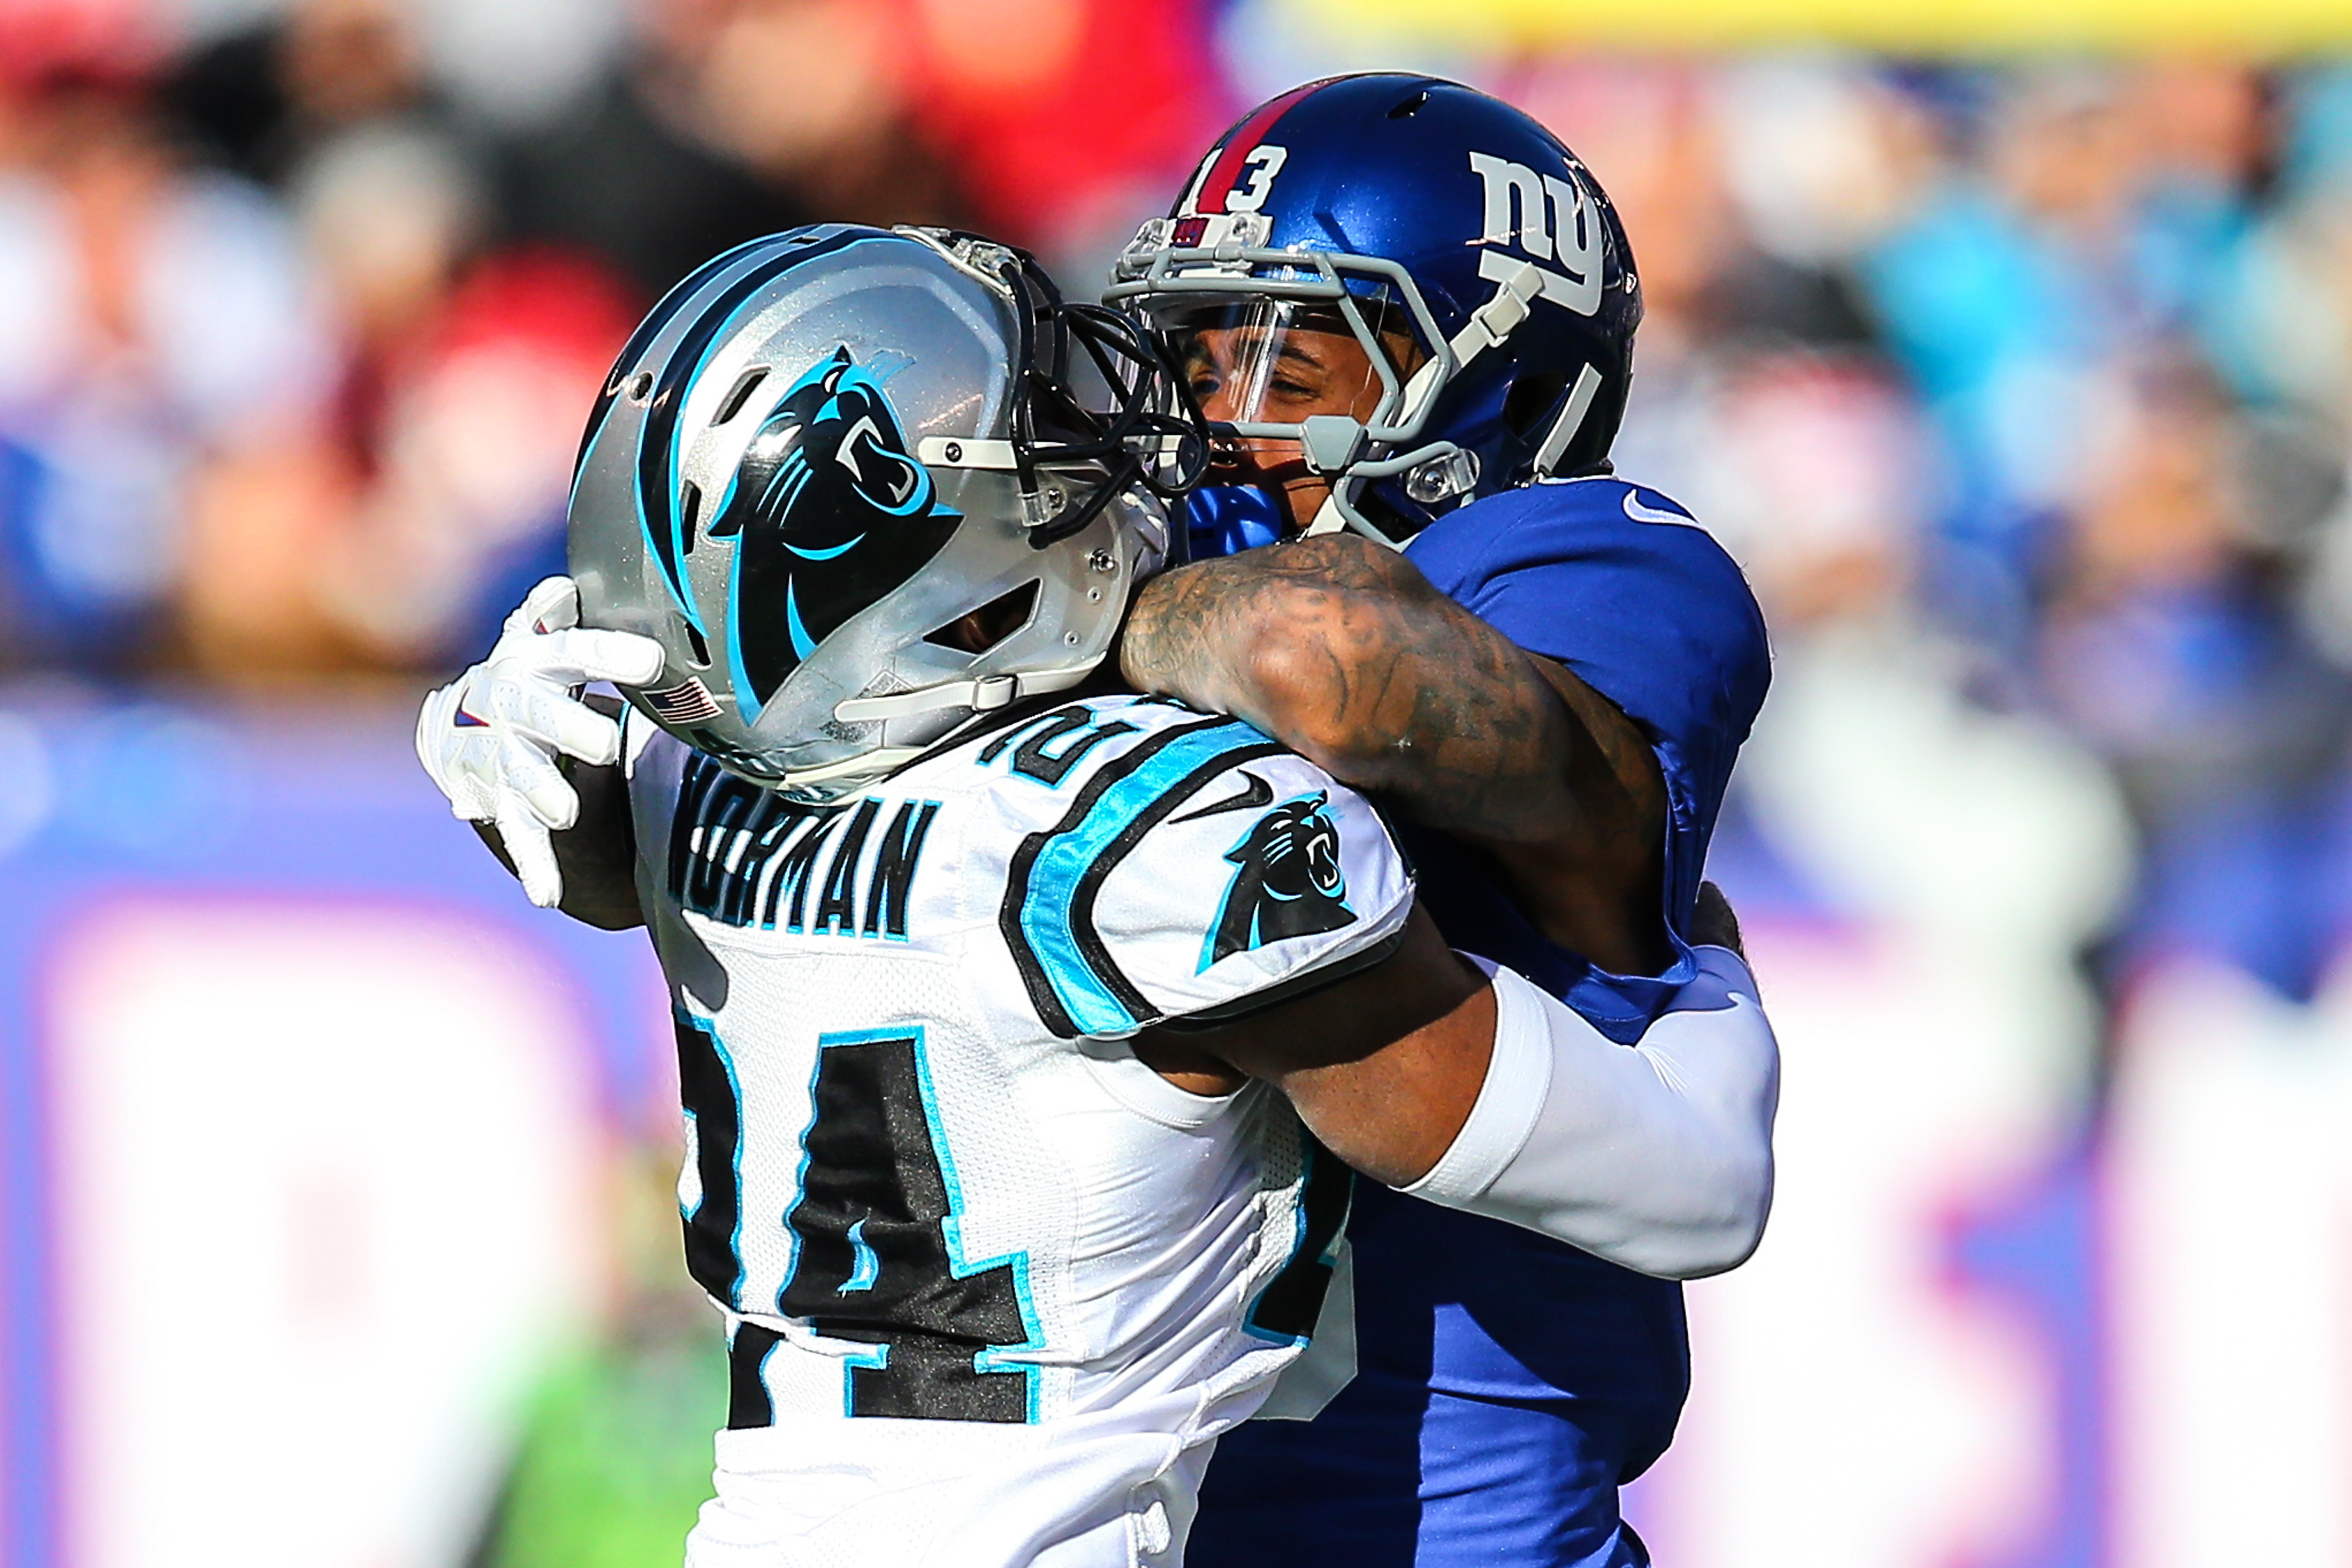 NFL: DEC 20 Panthers at Giants